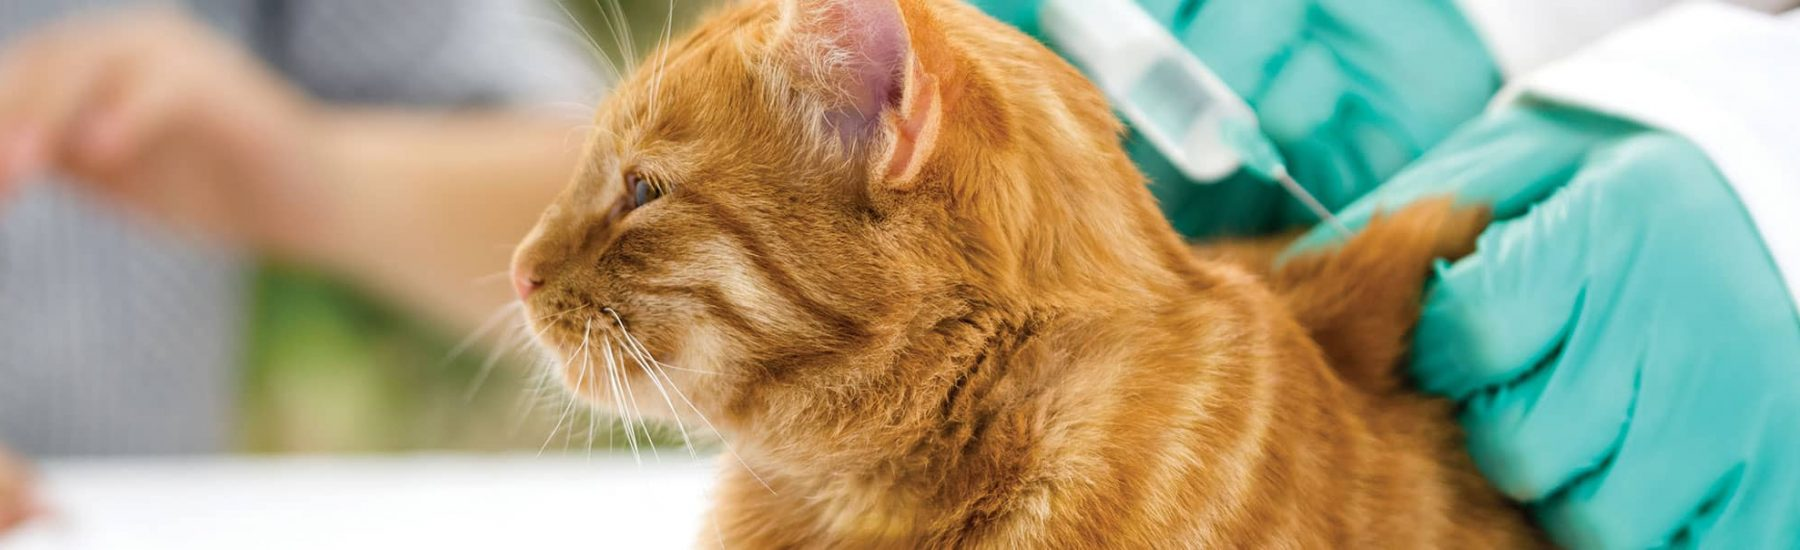 Ginger cat getting a vaccination shot